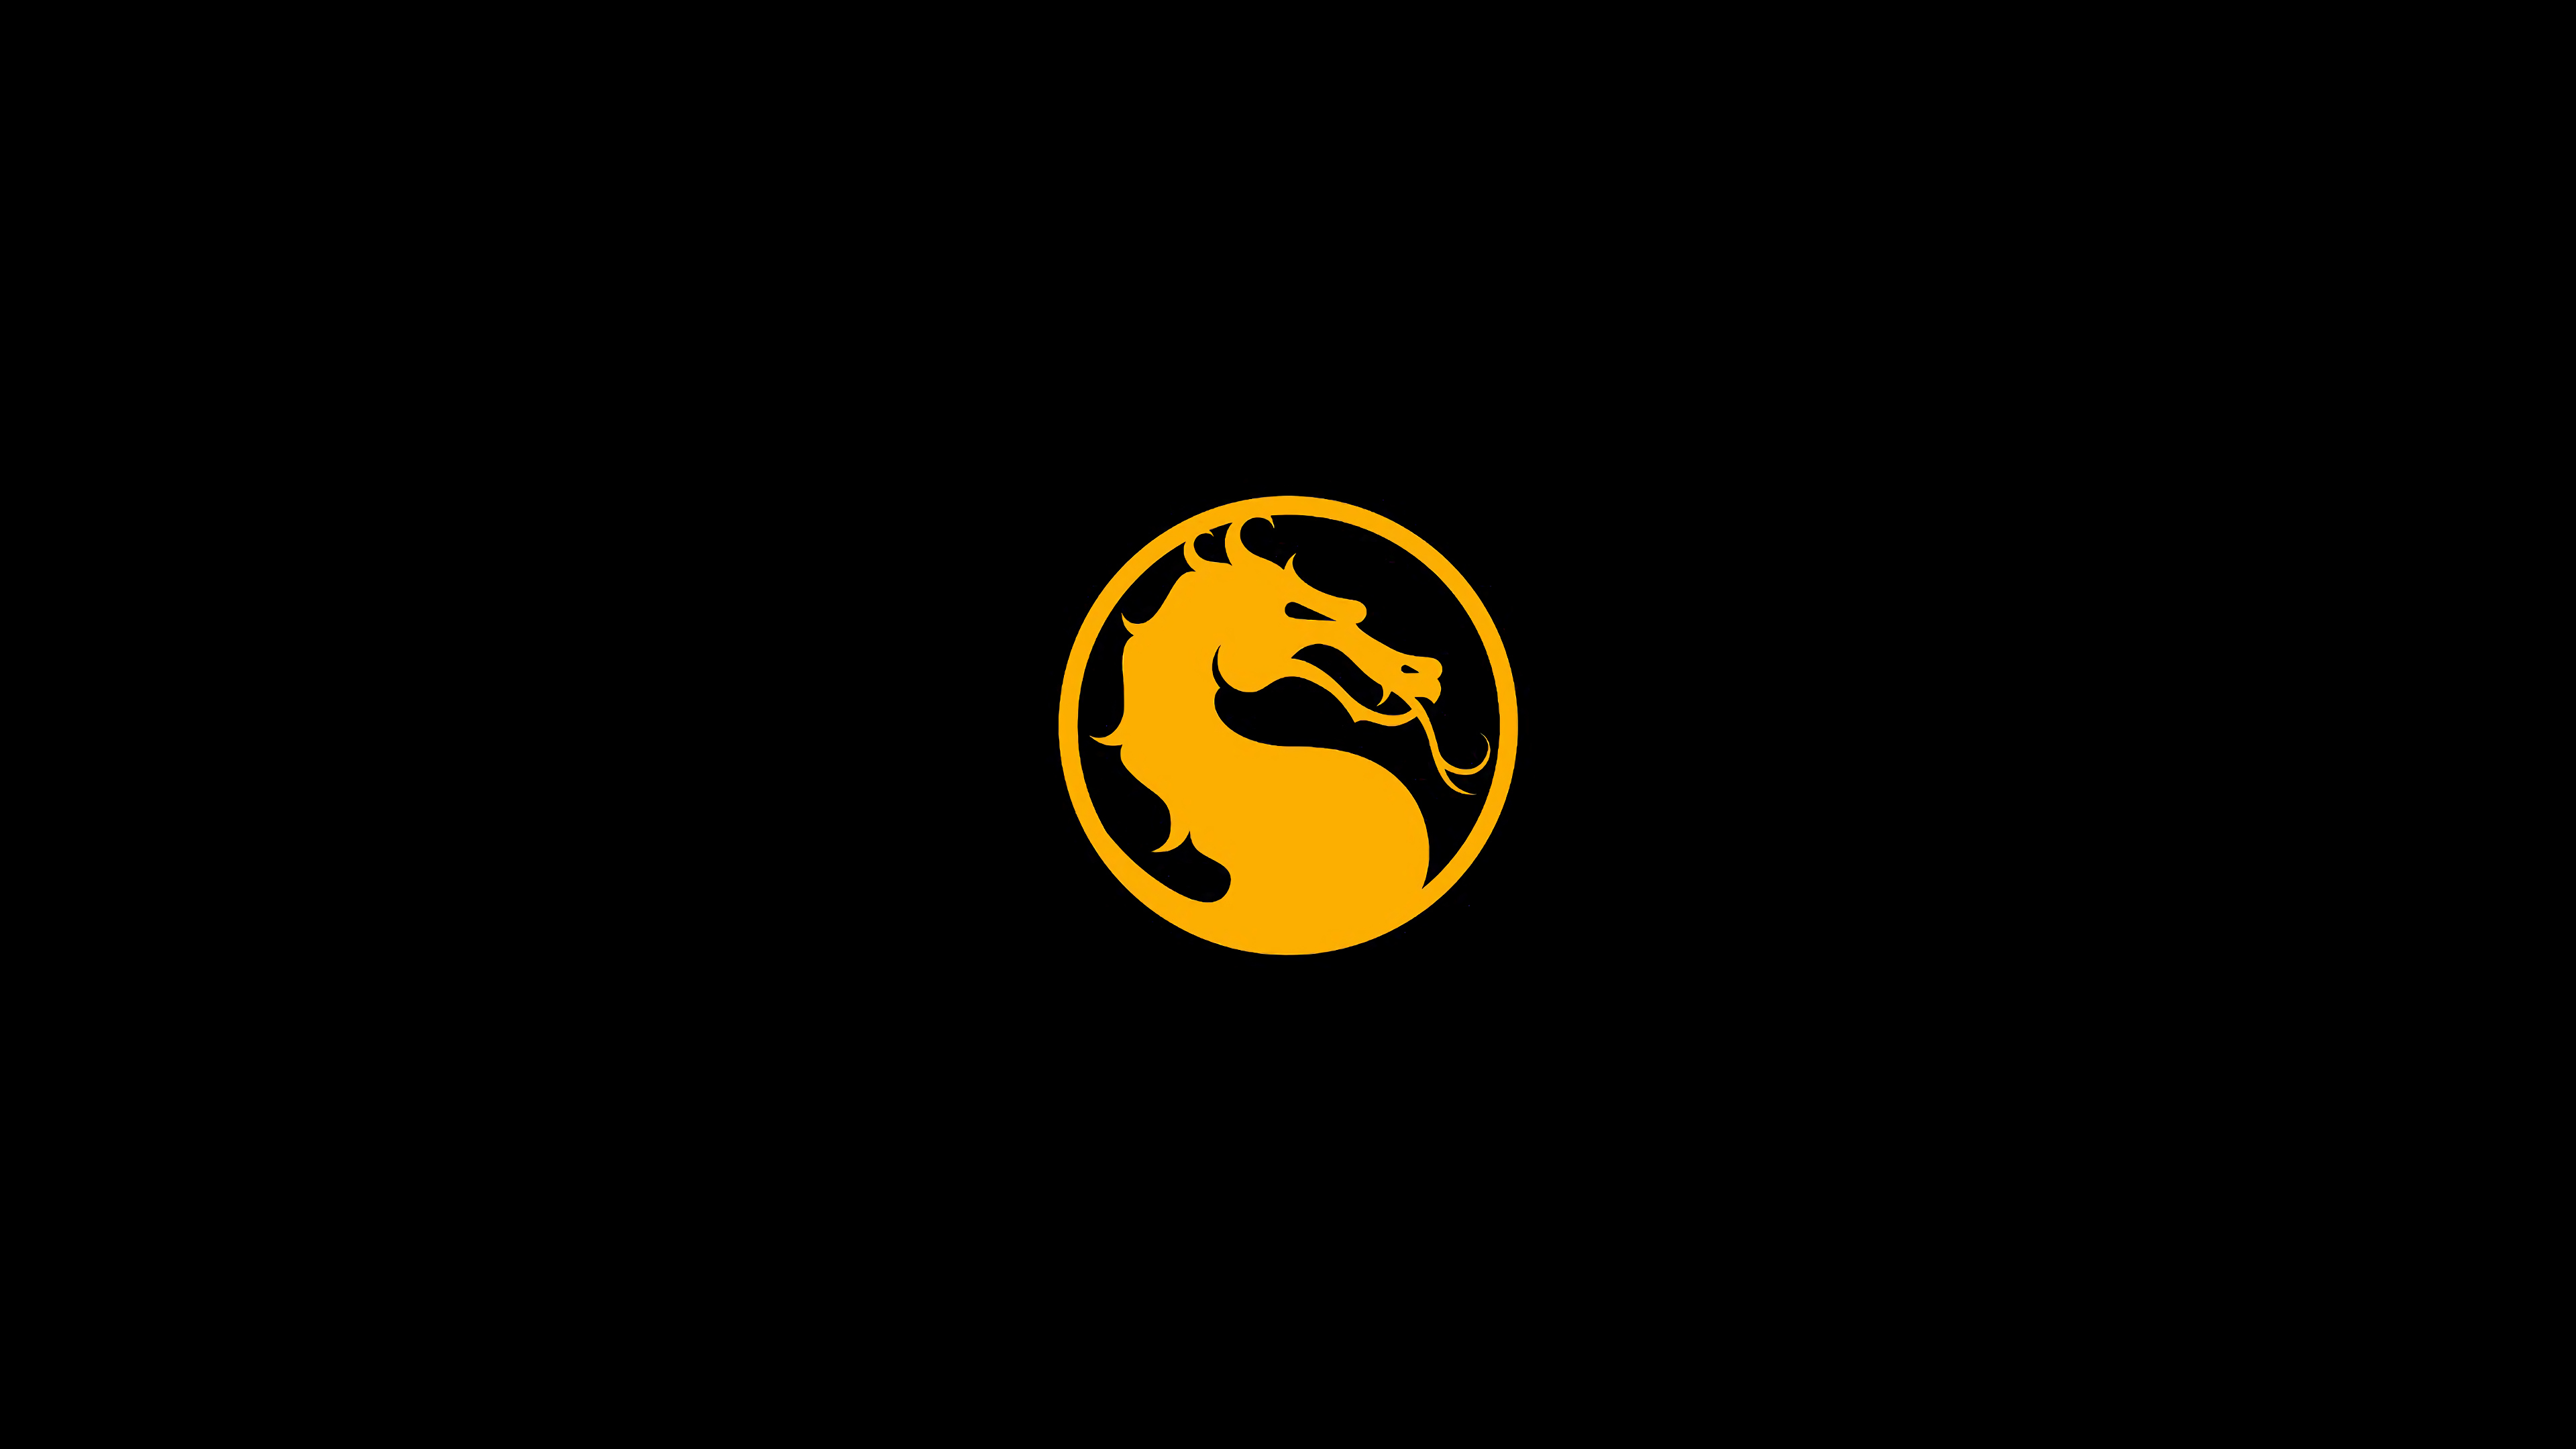 Mortal Kombat 11 wallpaper - Logo with the dragon